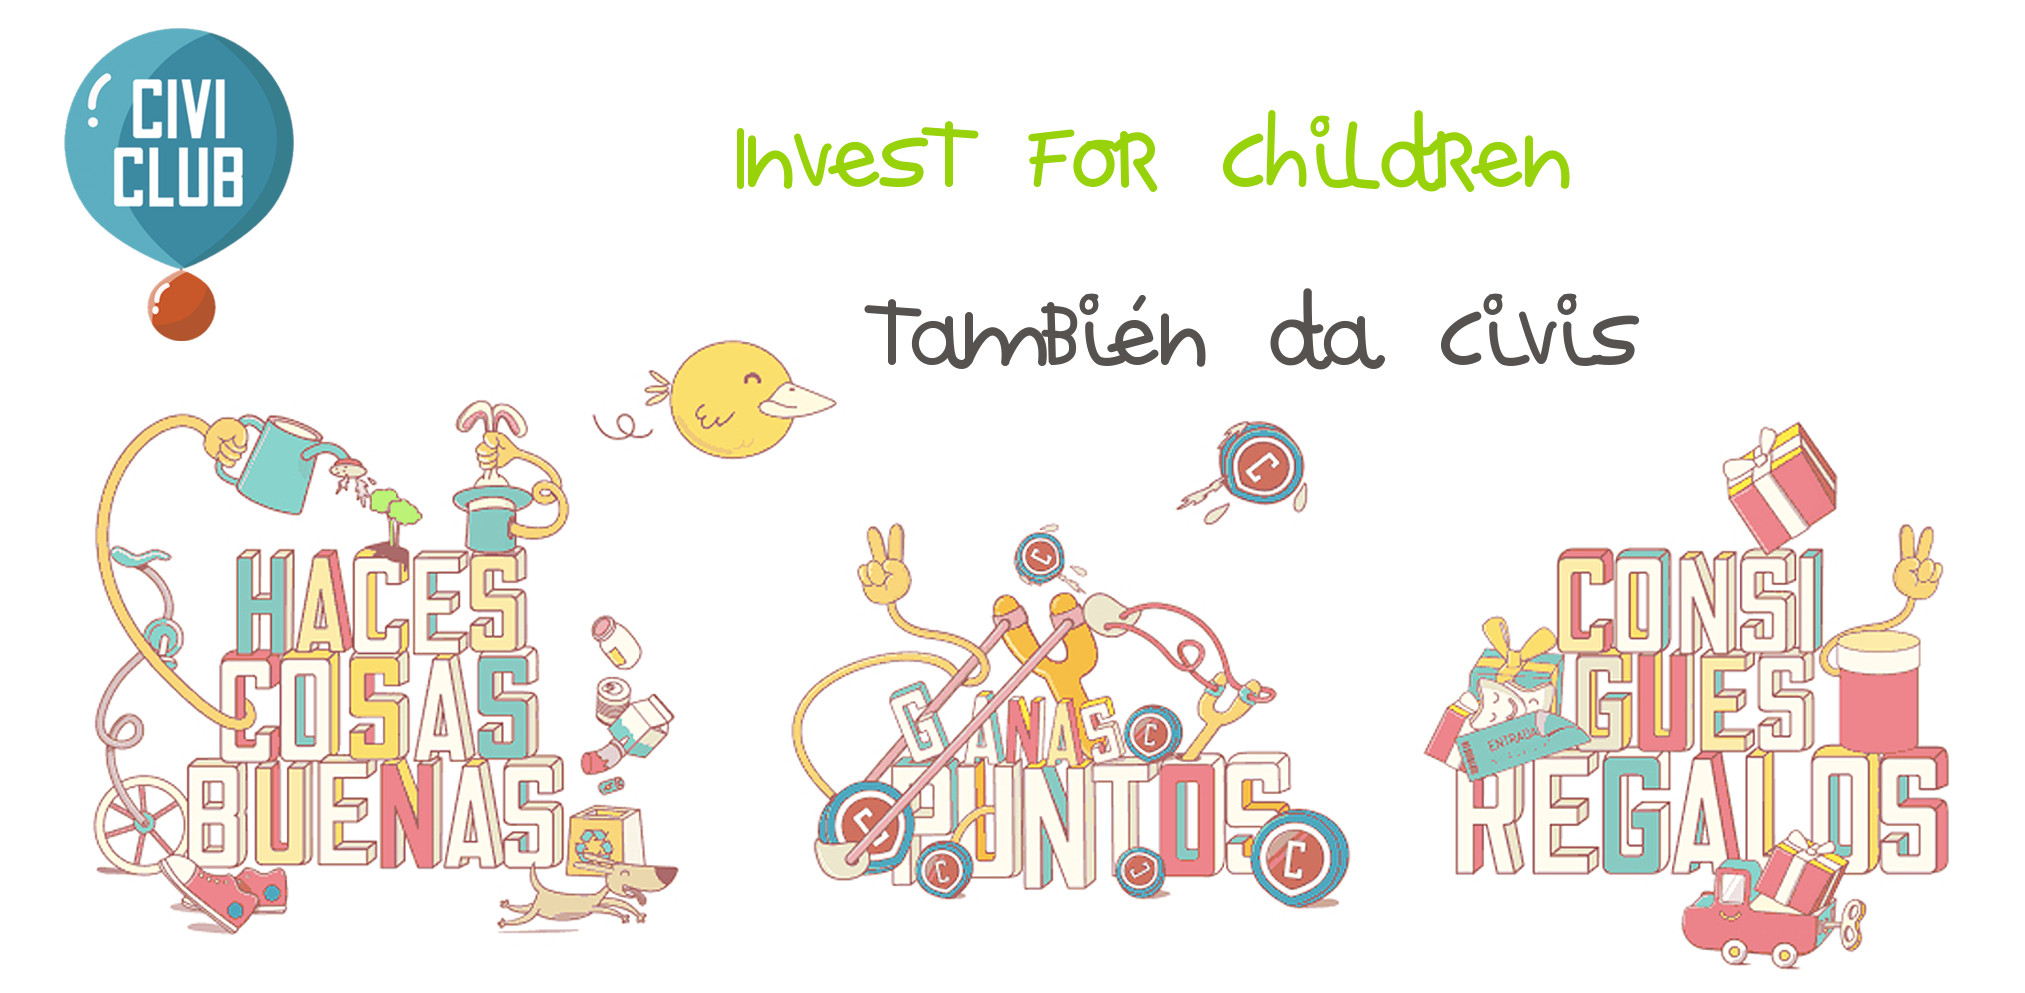 Invest for children también da civis